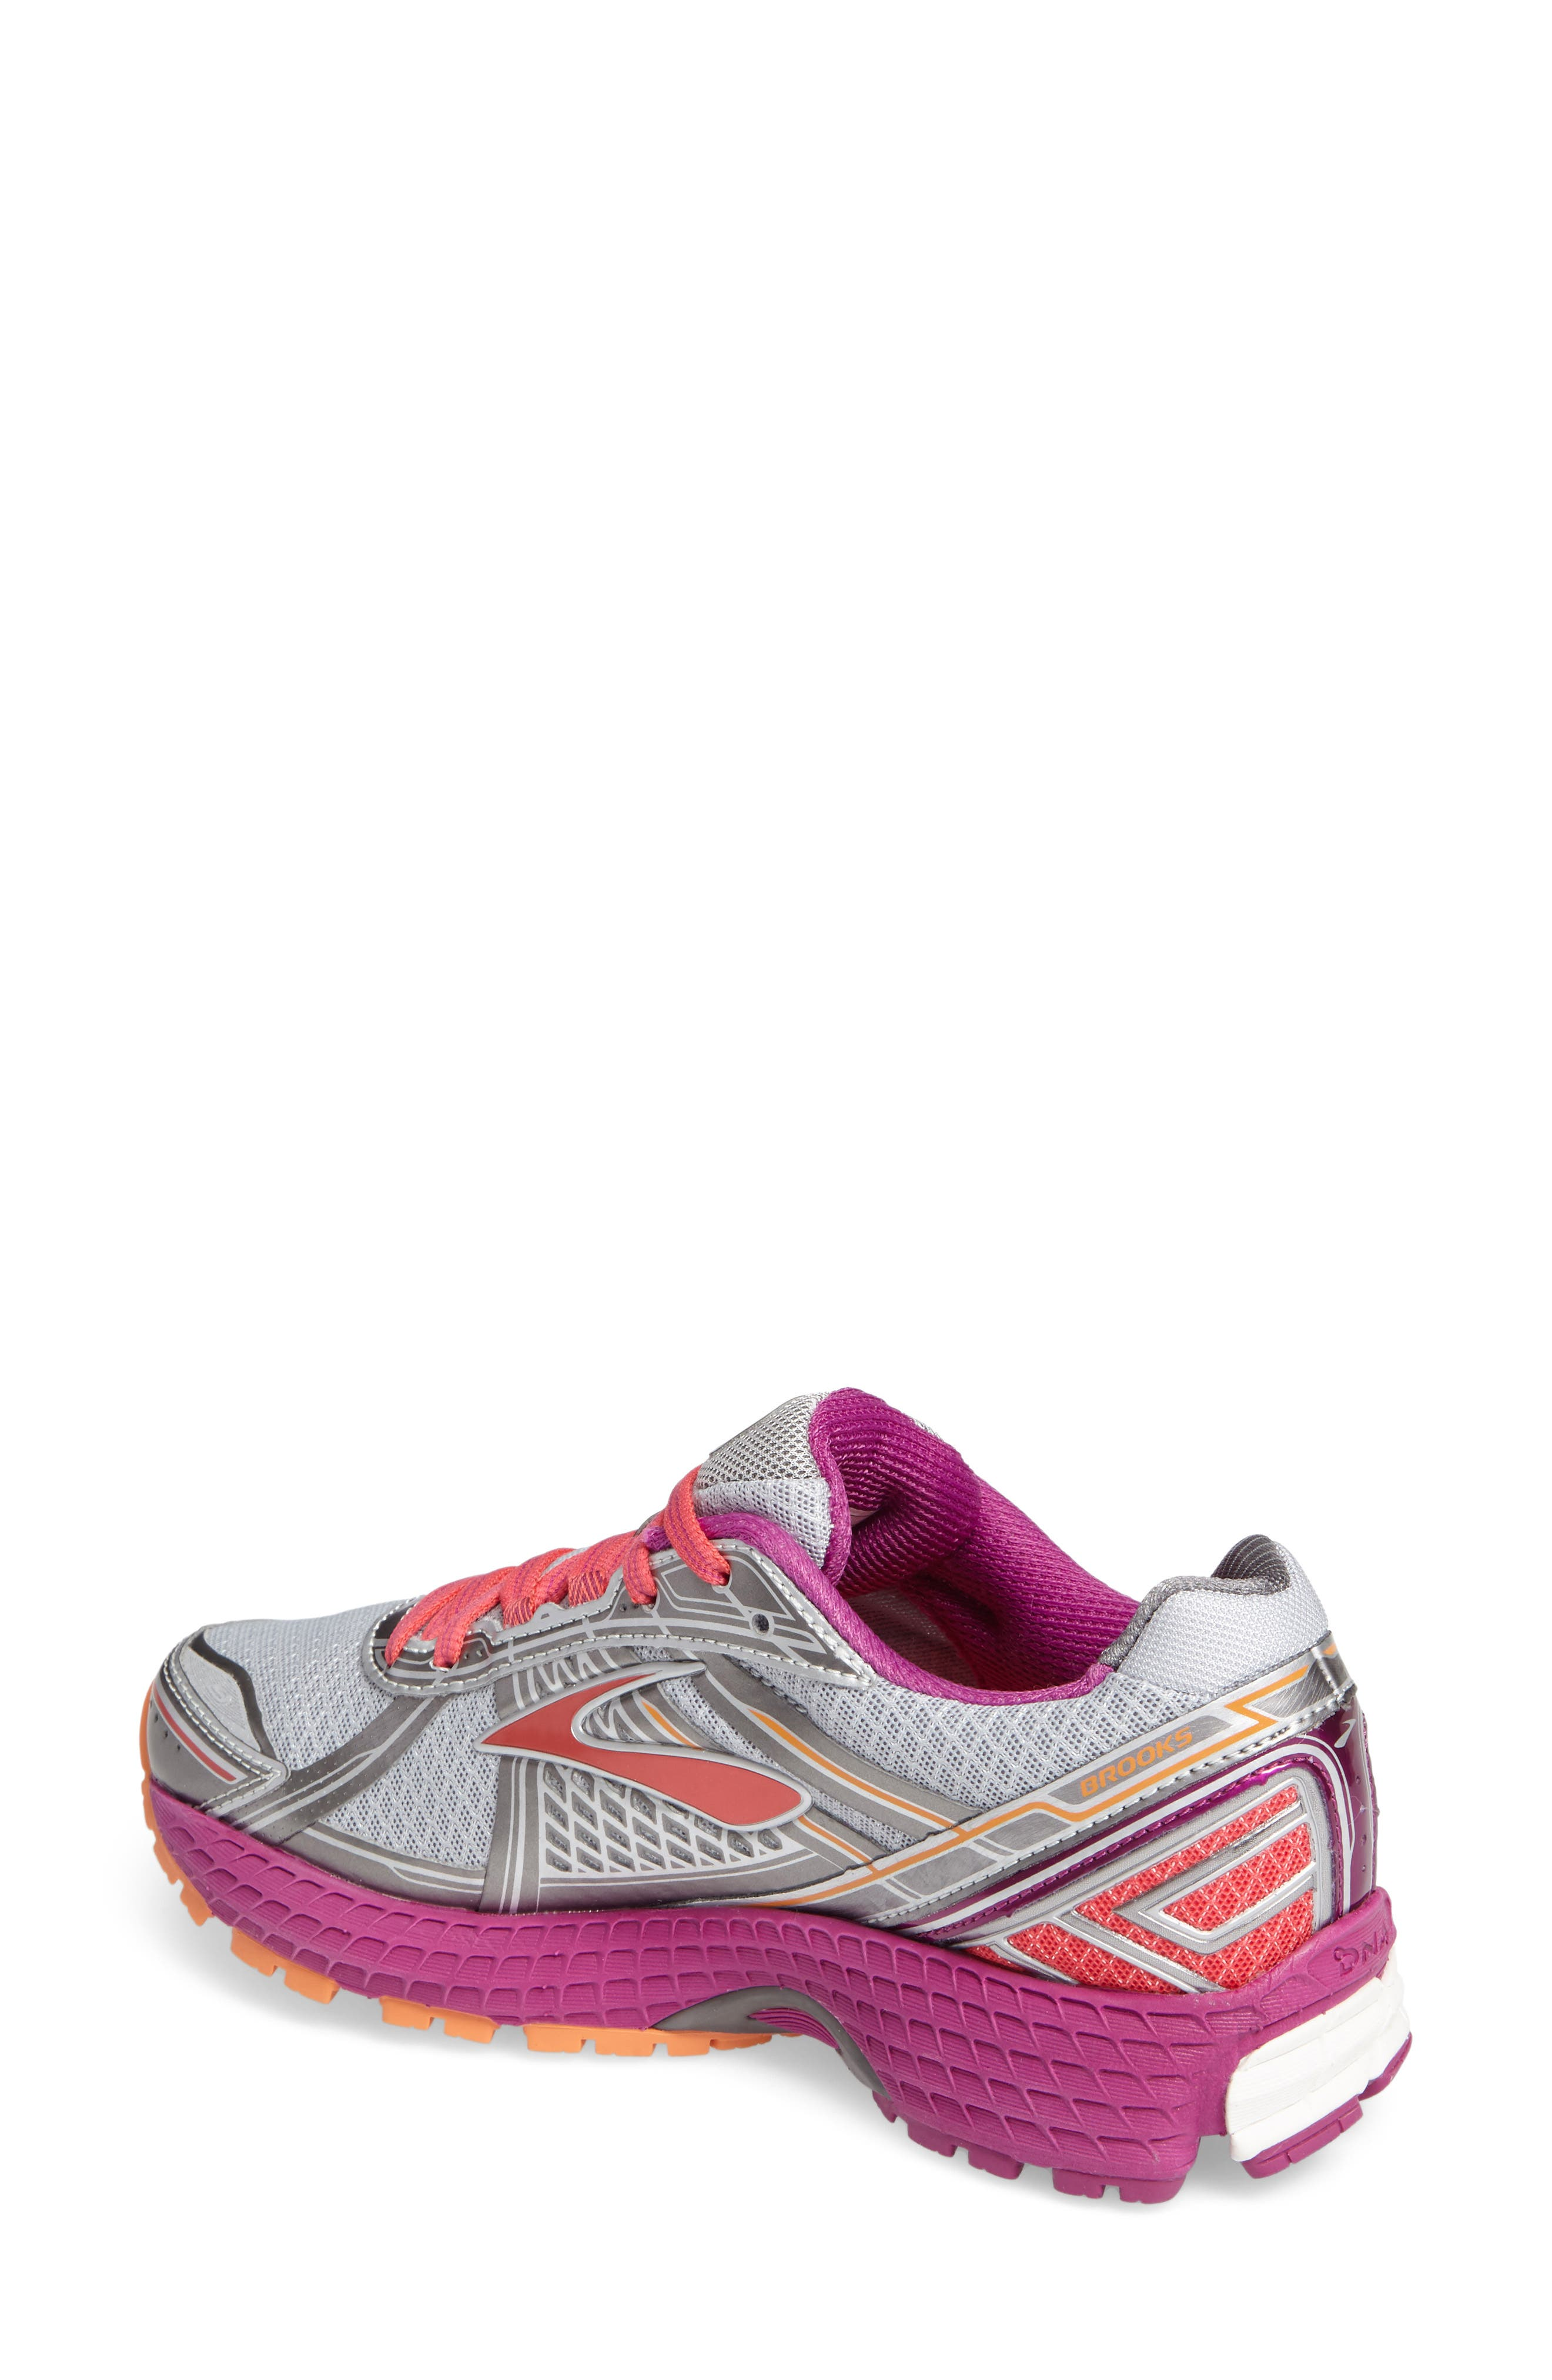 Defyance 9 Running Shoe,                             Alternate thumbnail 2, color,                             040